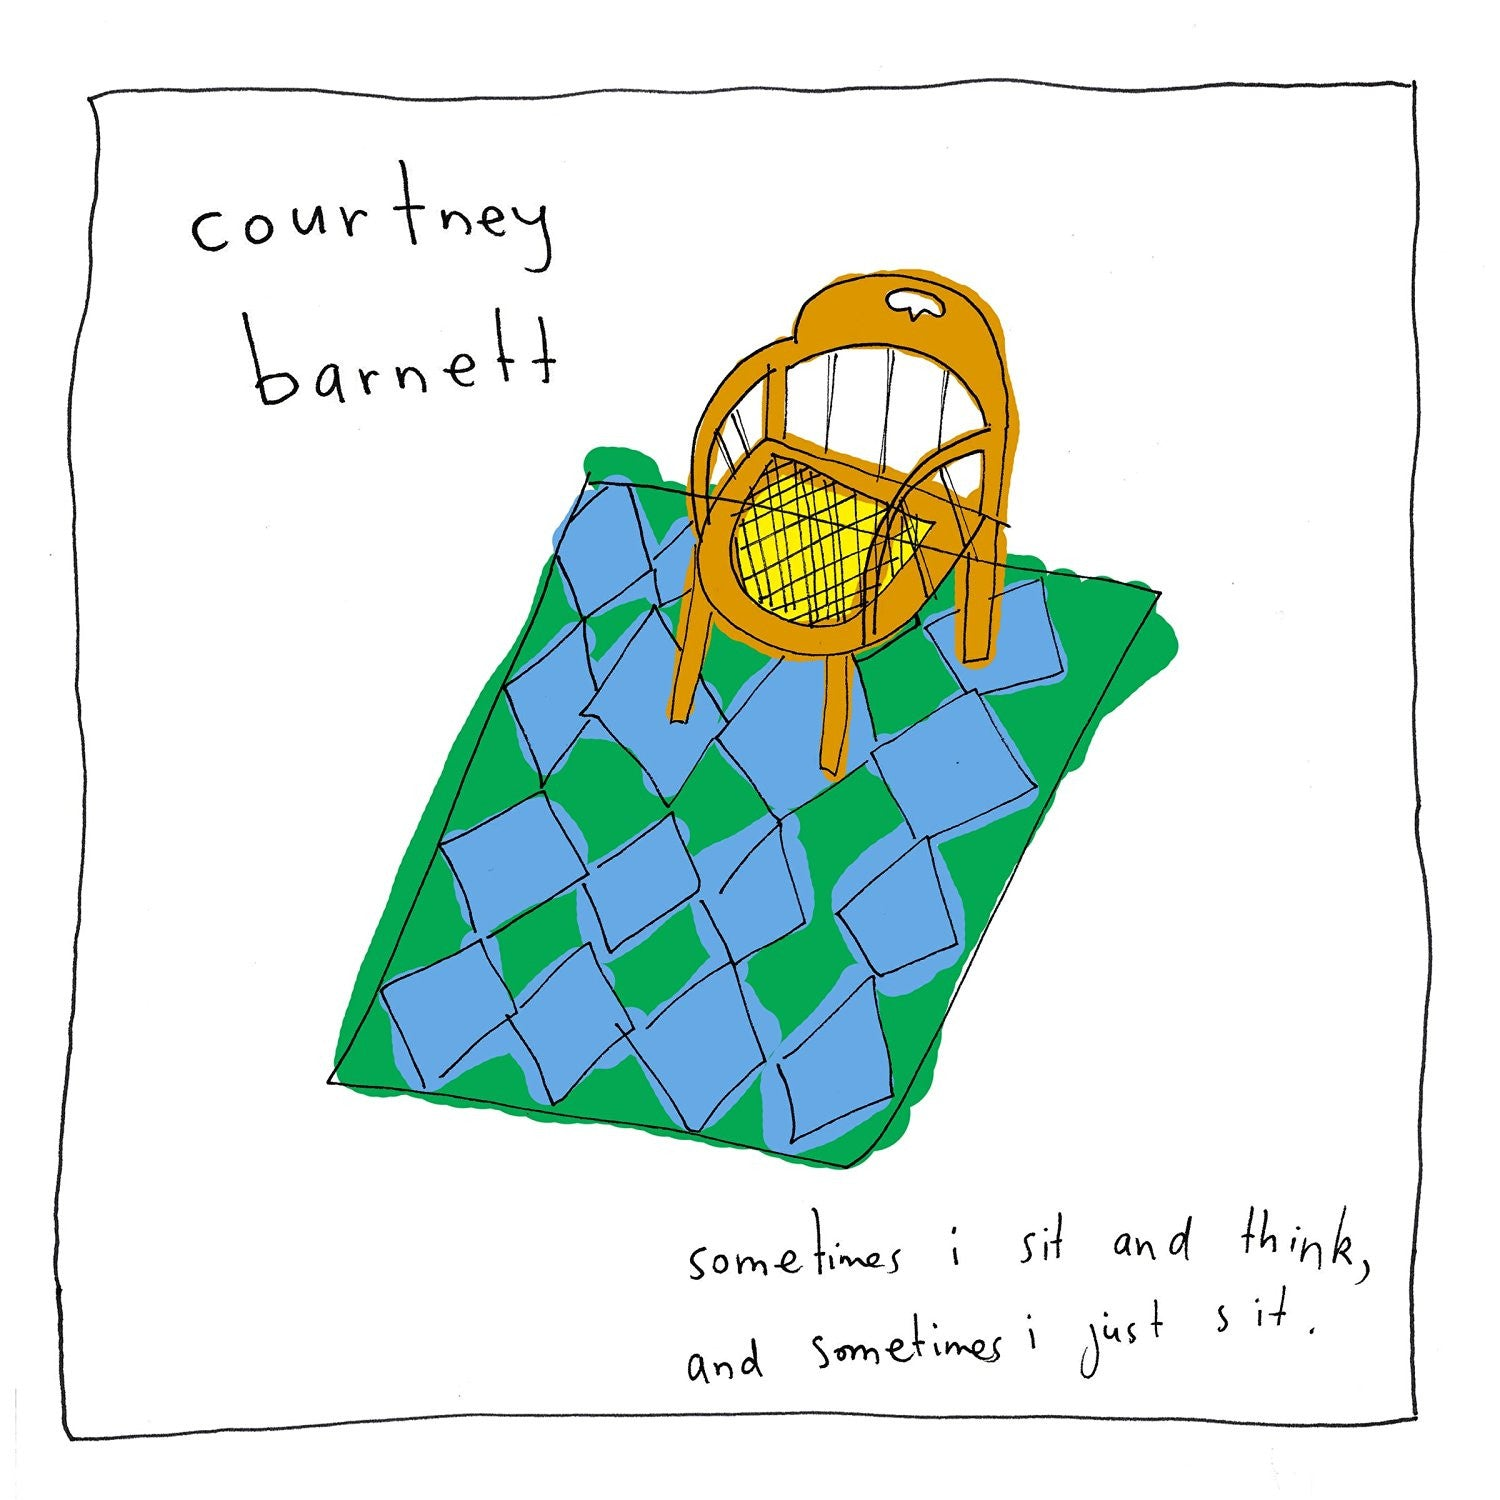 Courtney Barnett - Sometimes I Sit and Think and Sometimes I Just Sit (CSD)